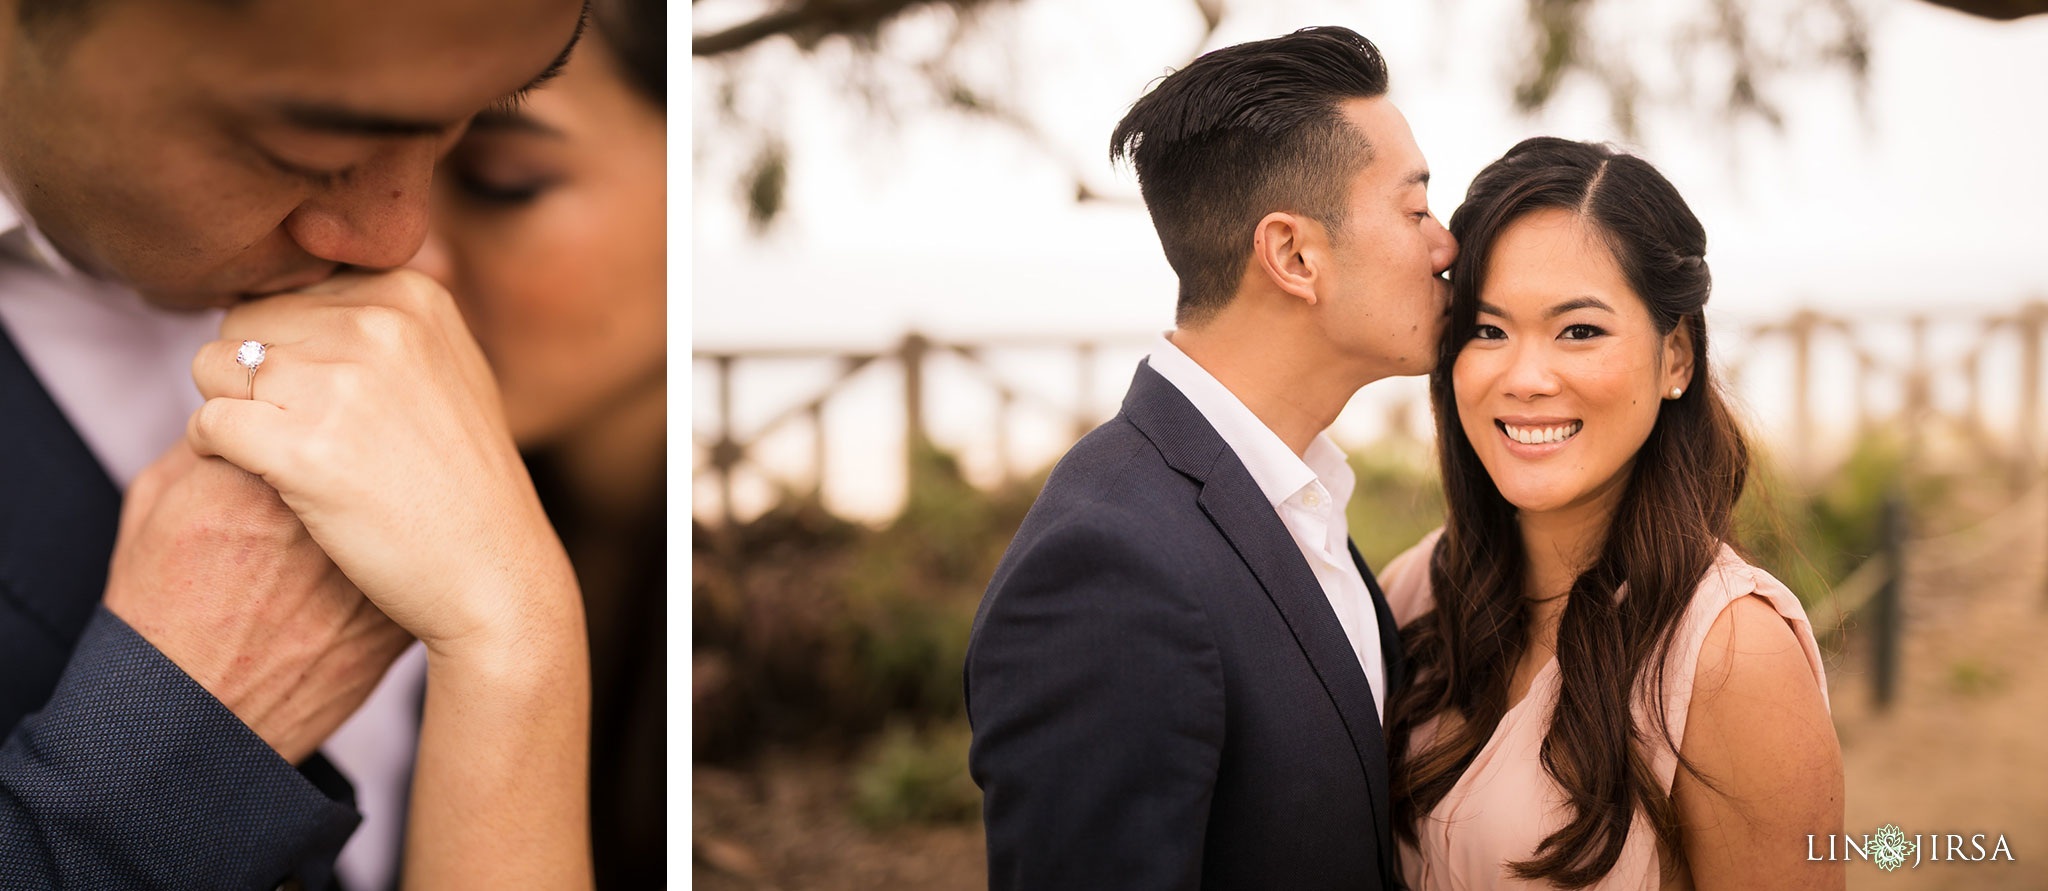 04 santa monica pier engagement photography